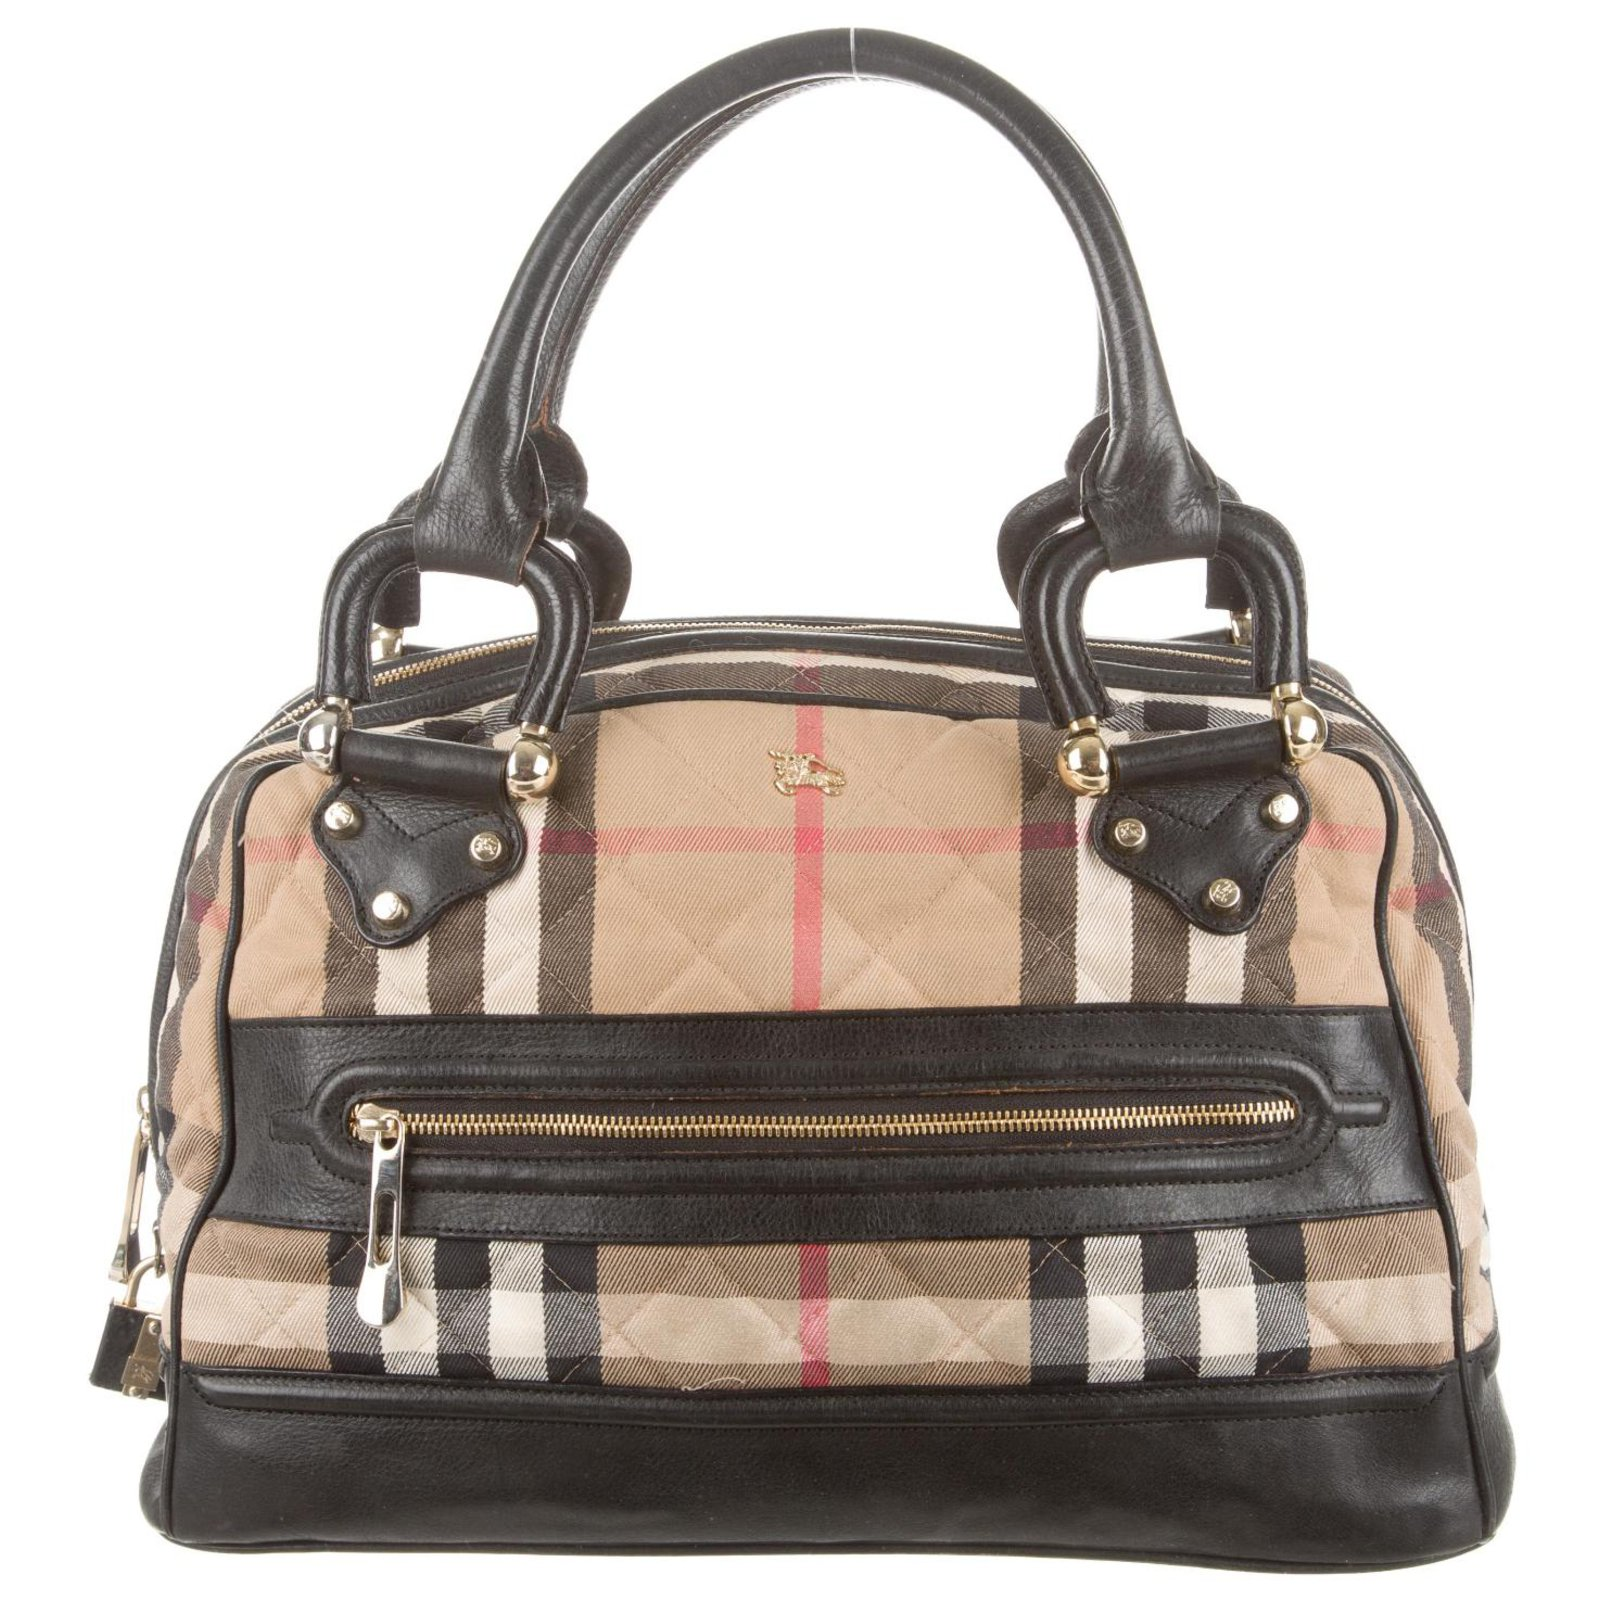 1b796901de2a Burberry Bowling Bag Handbags Leather Other Brown Beige Ref 86285